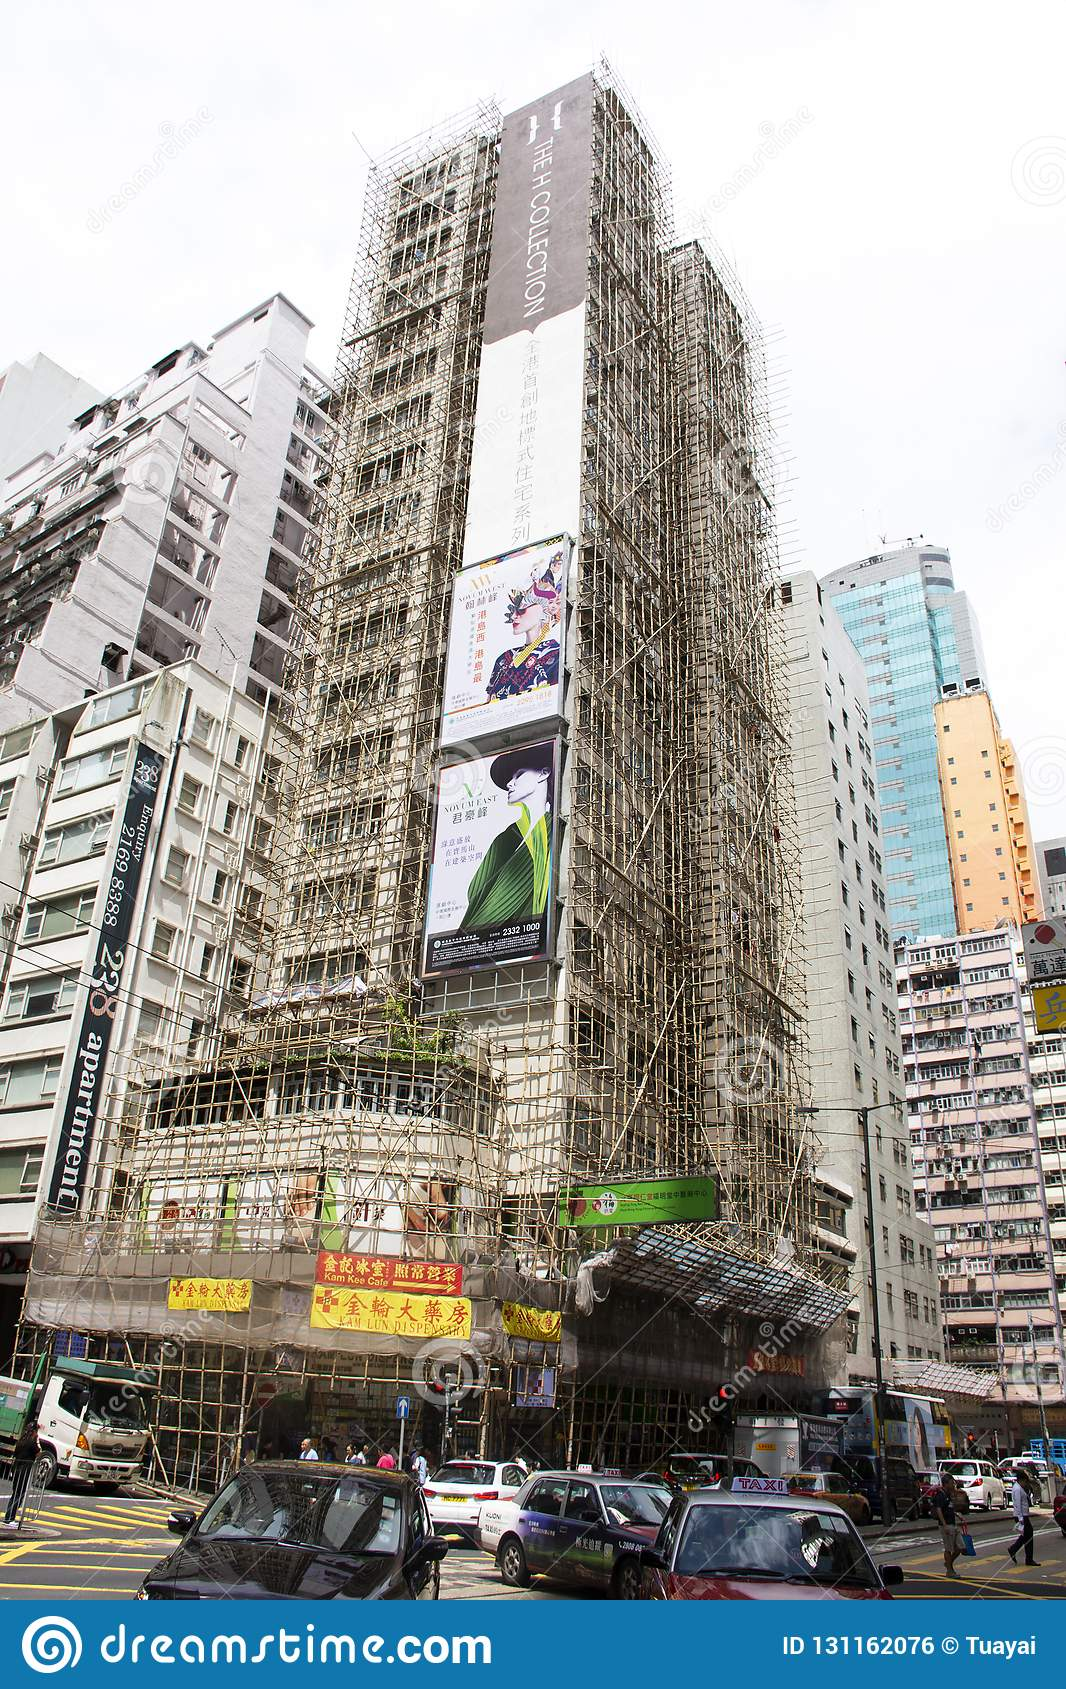 Traffic road and renovate building in construction site beside Fa Yuen Street at Mong Kok in Hong Kong, China